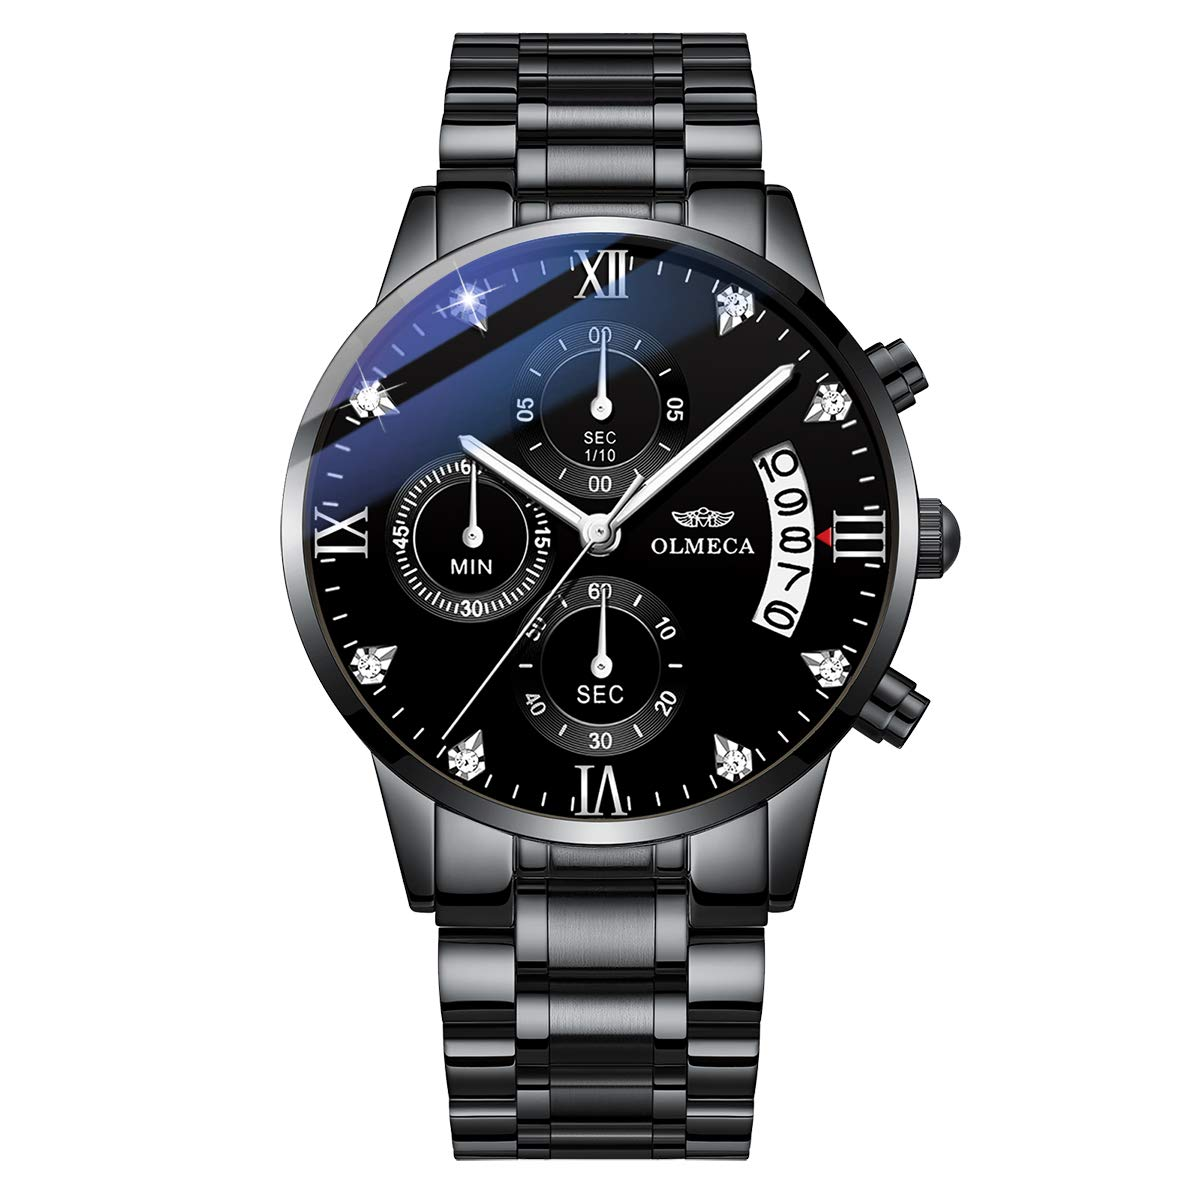 OLMECA Men's Watches Sports Fashion Business Casual Dress Wristwatches Chronograph Dials Calendar Date Window Waterproof Quartz Watches Stainless Steel Band 878